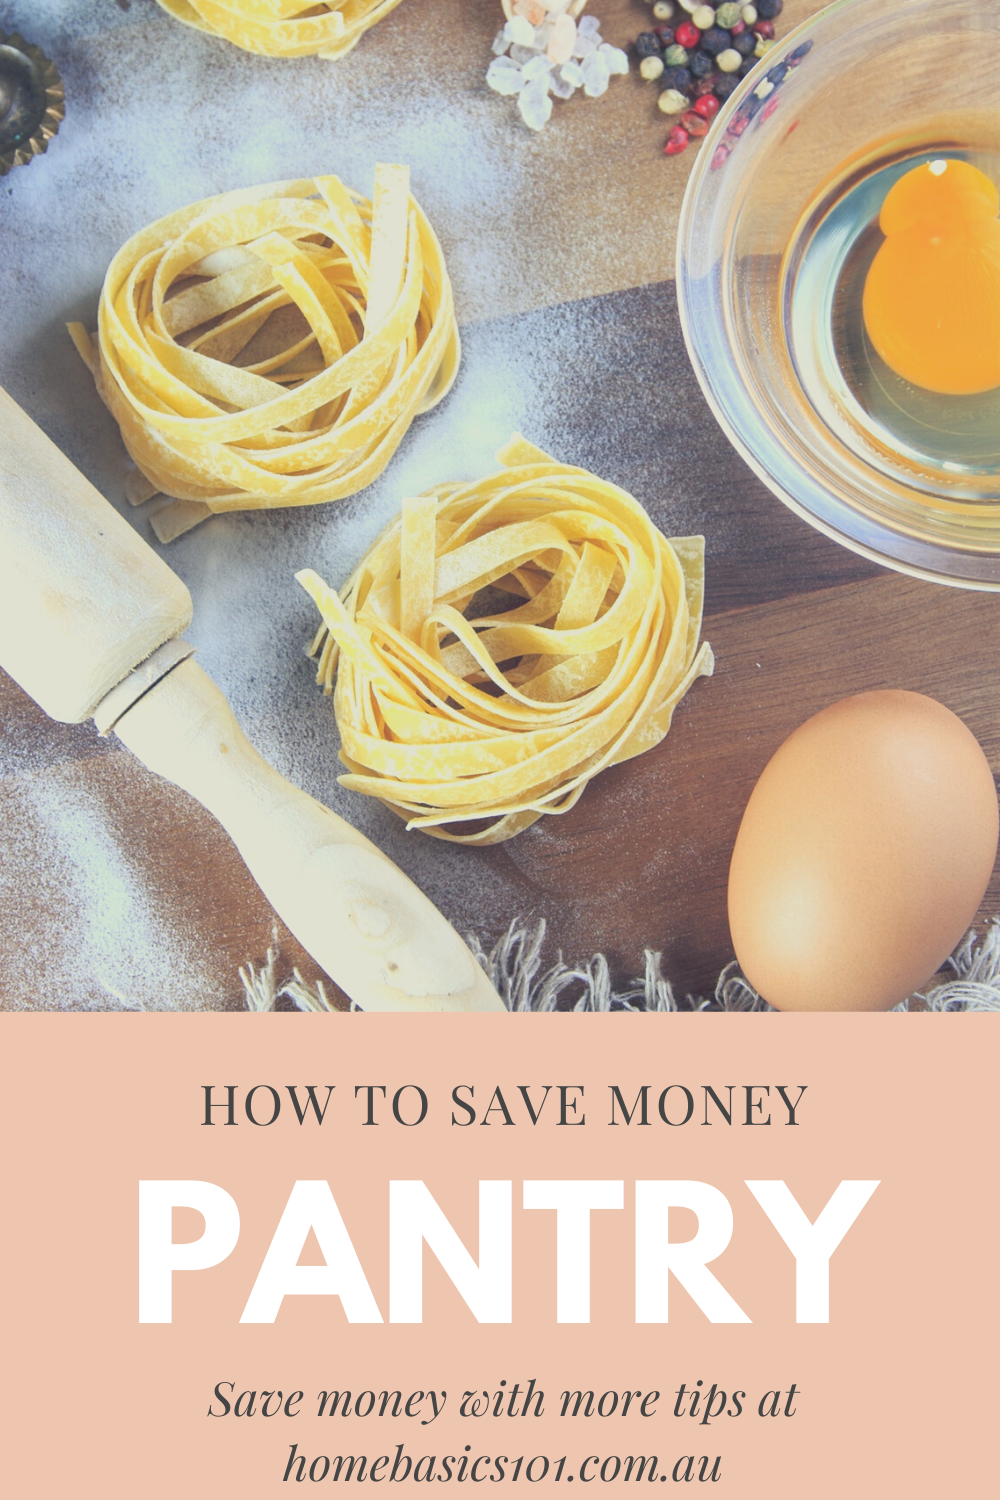 Having a Pantry Full of Staple Ingredients will save you Money